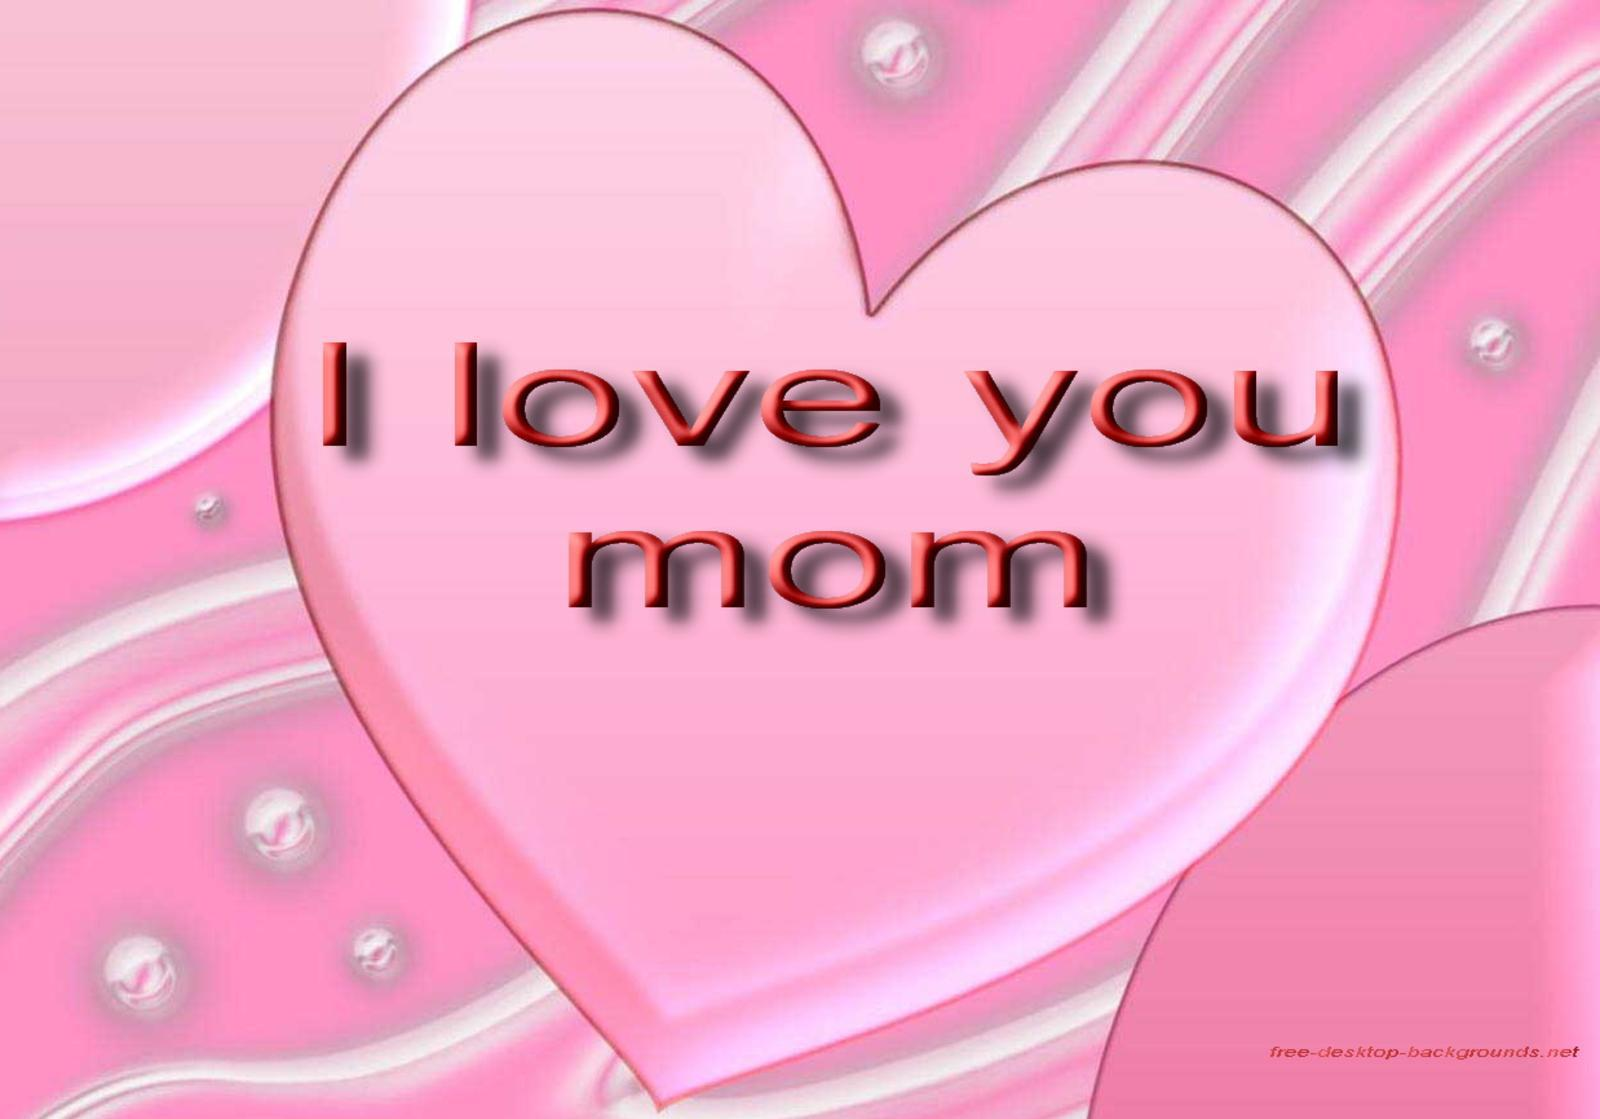 Love You Mom Mothers Day Wallpapers Cool Christian Wallpapers 1600x1119